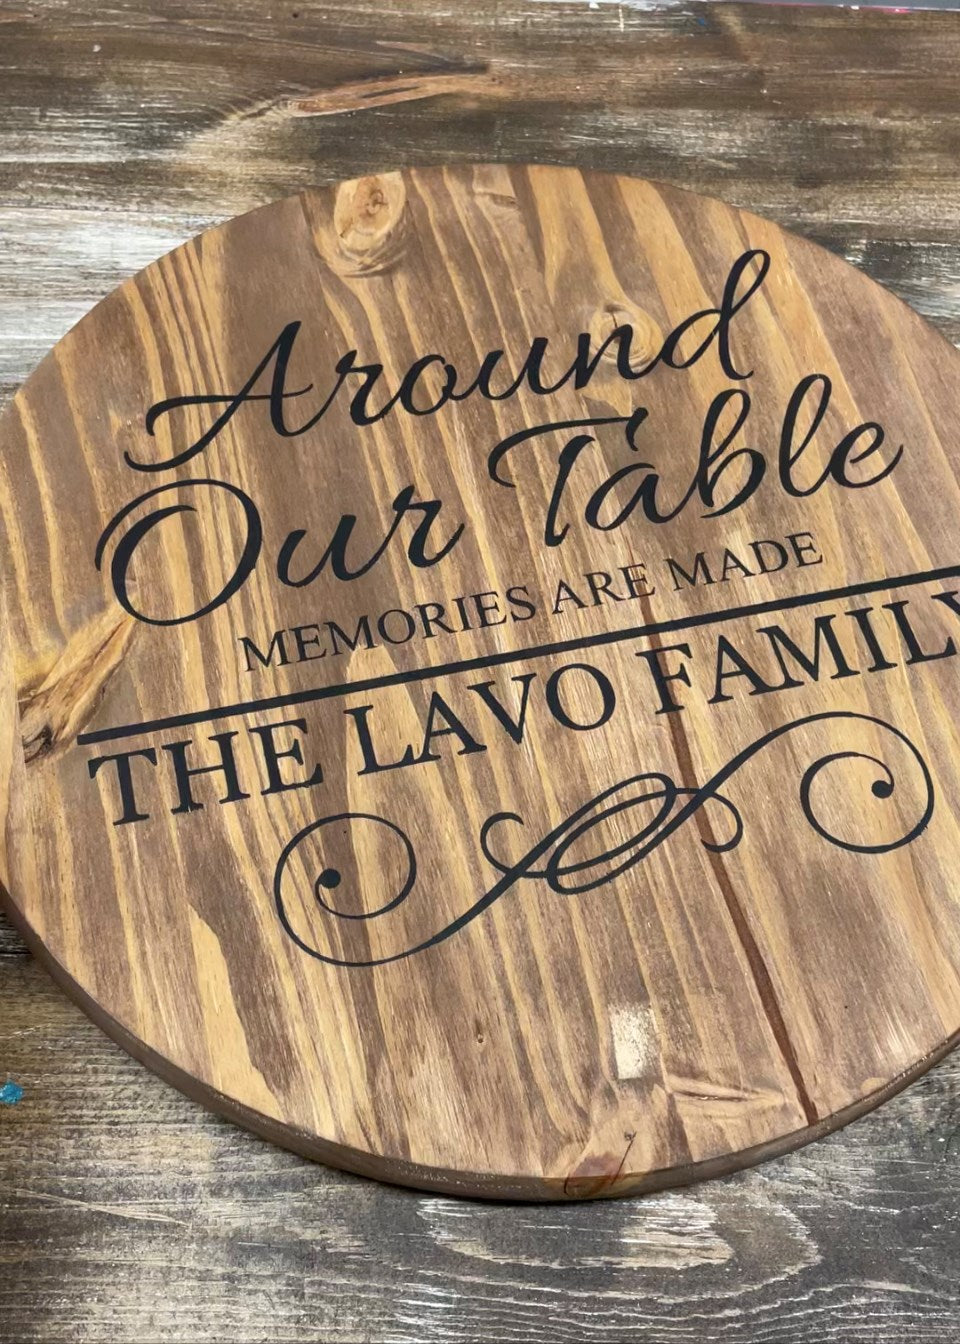 Lazy Susan - Around our table memories are made